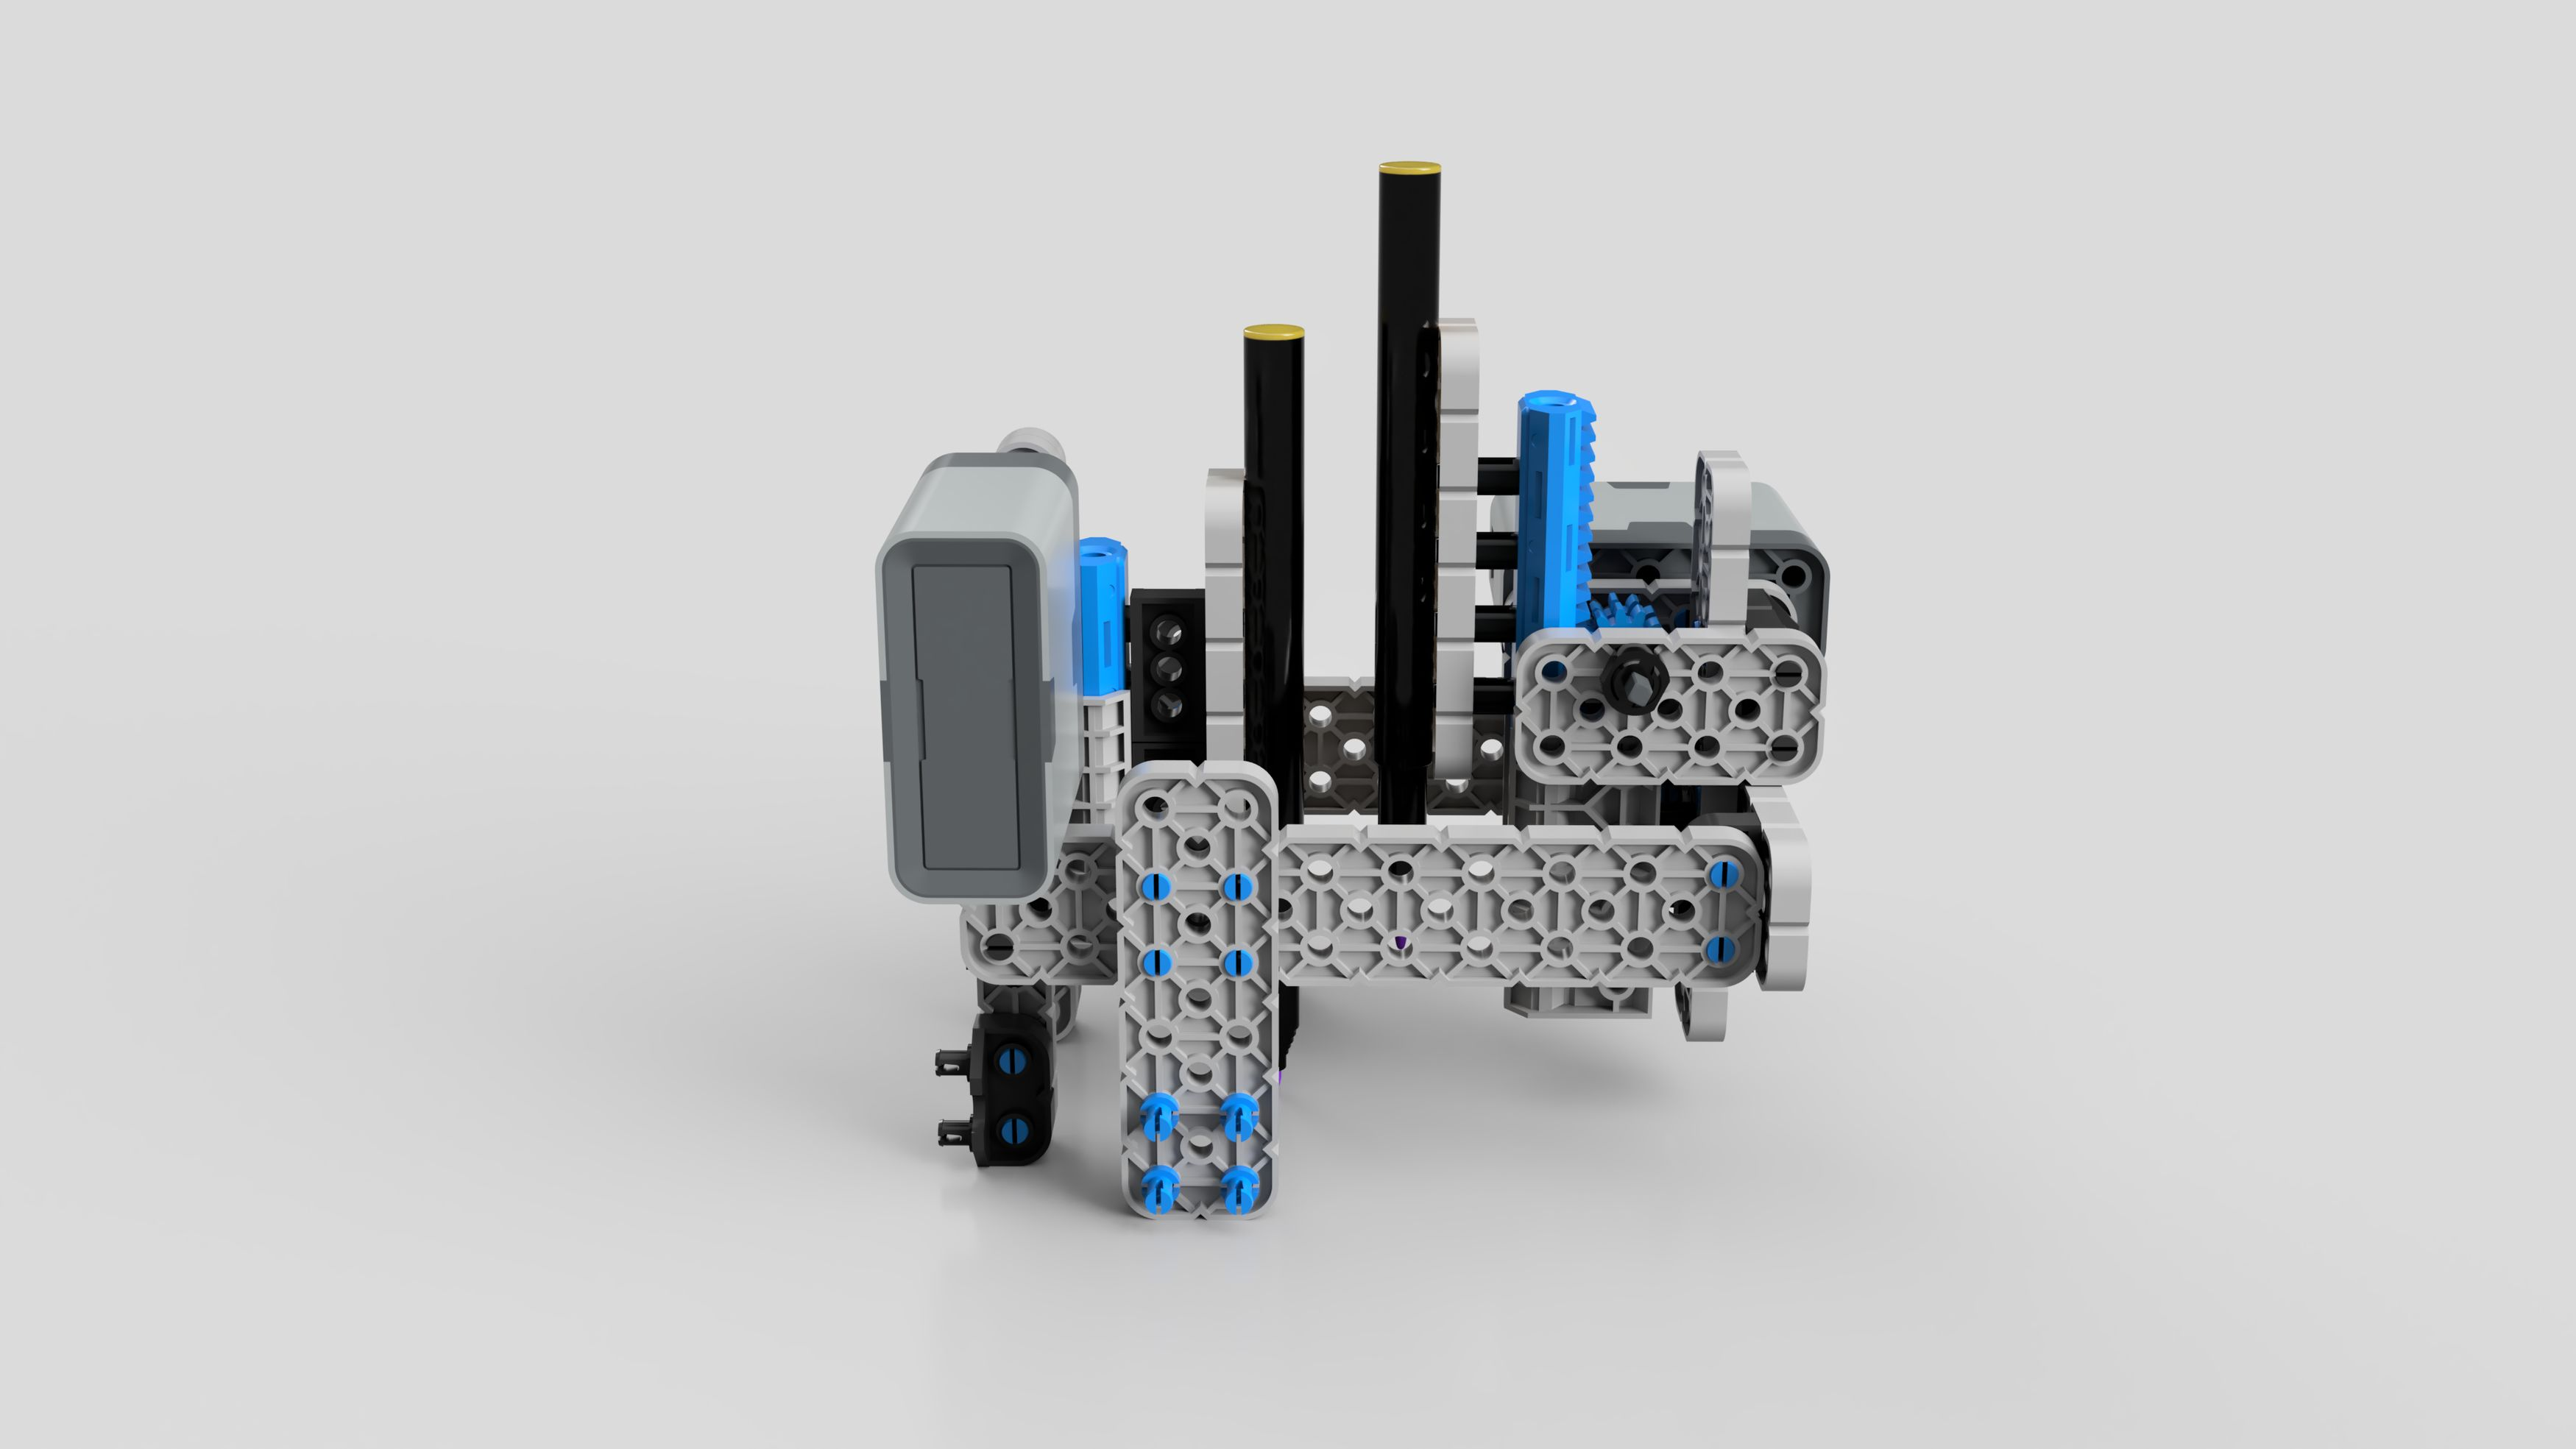 Robotic-pen-vex-iq---vexcode-v2-0-2020-may-24-04-43-02pm-000-customizedview25899014618-png-3500-3500